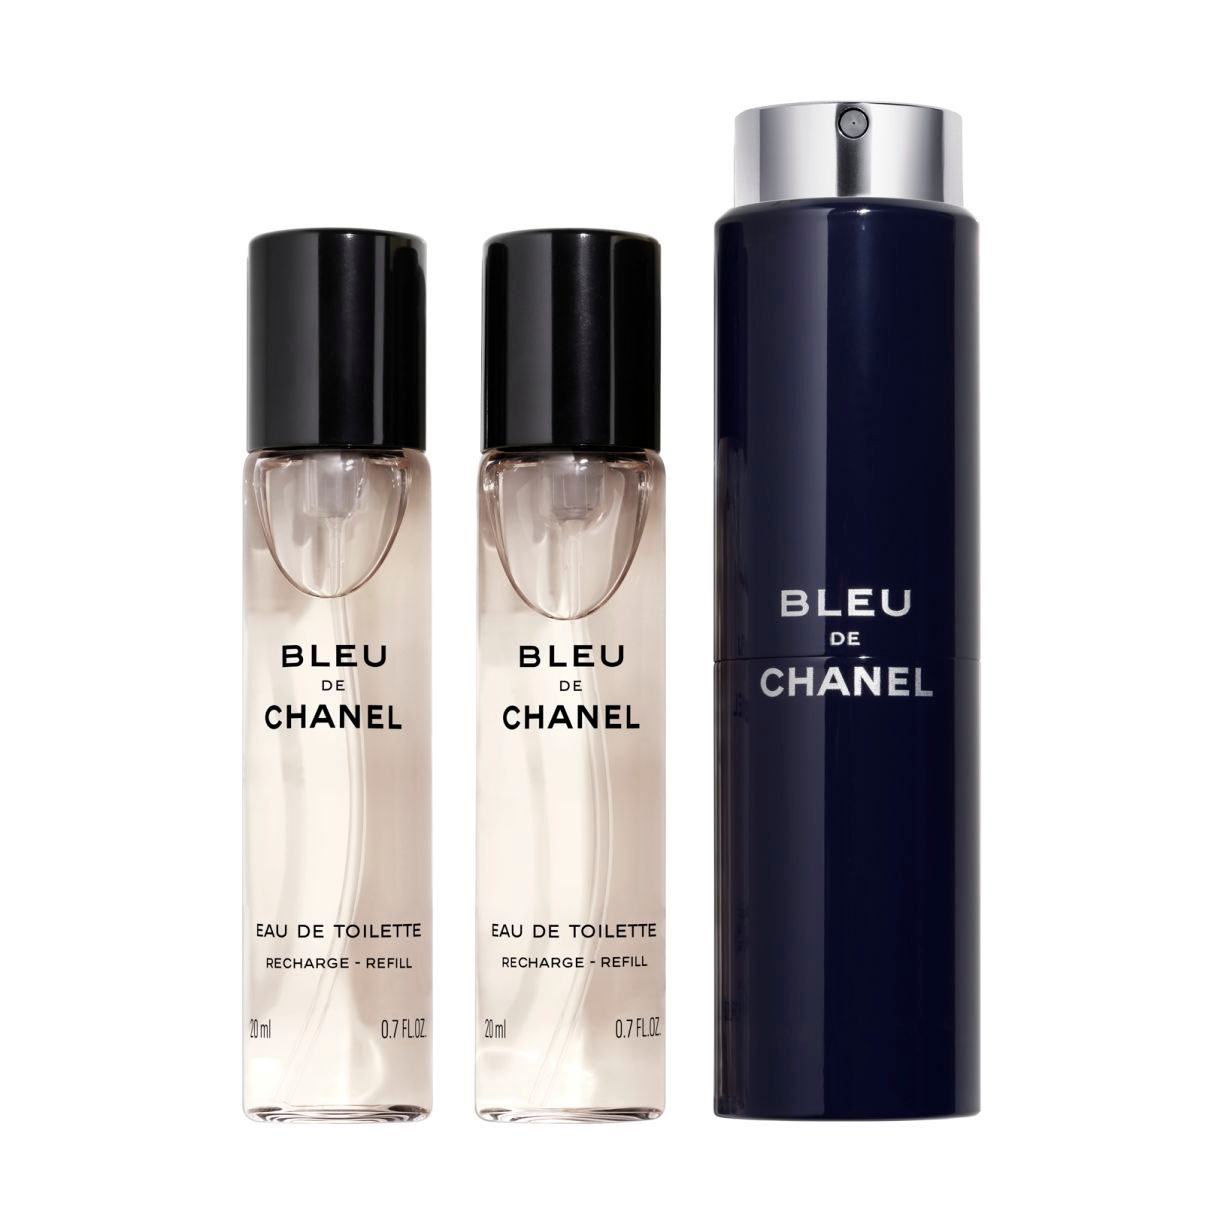 bleu de chanel chanel official site. Black Bedroom Furniture Sets. Home Design Ideas